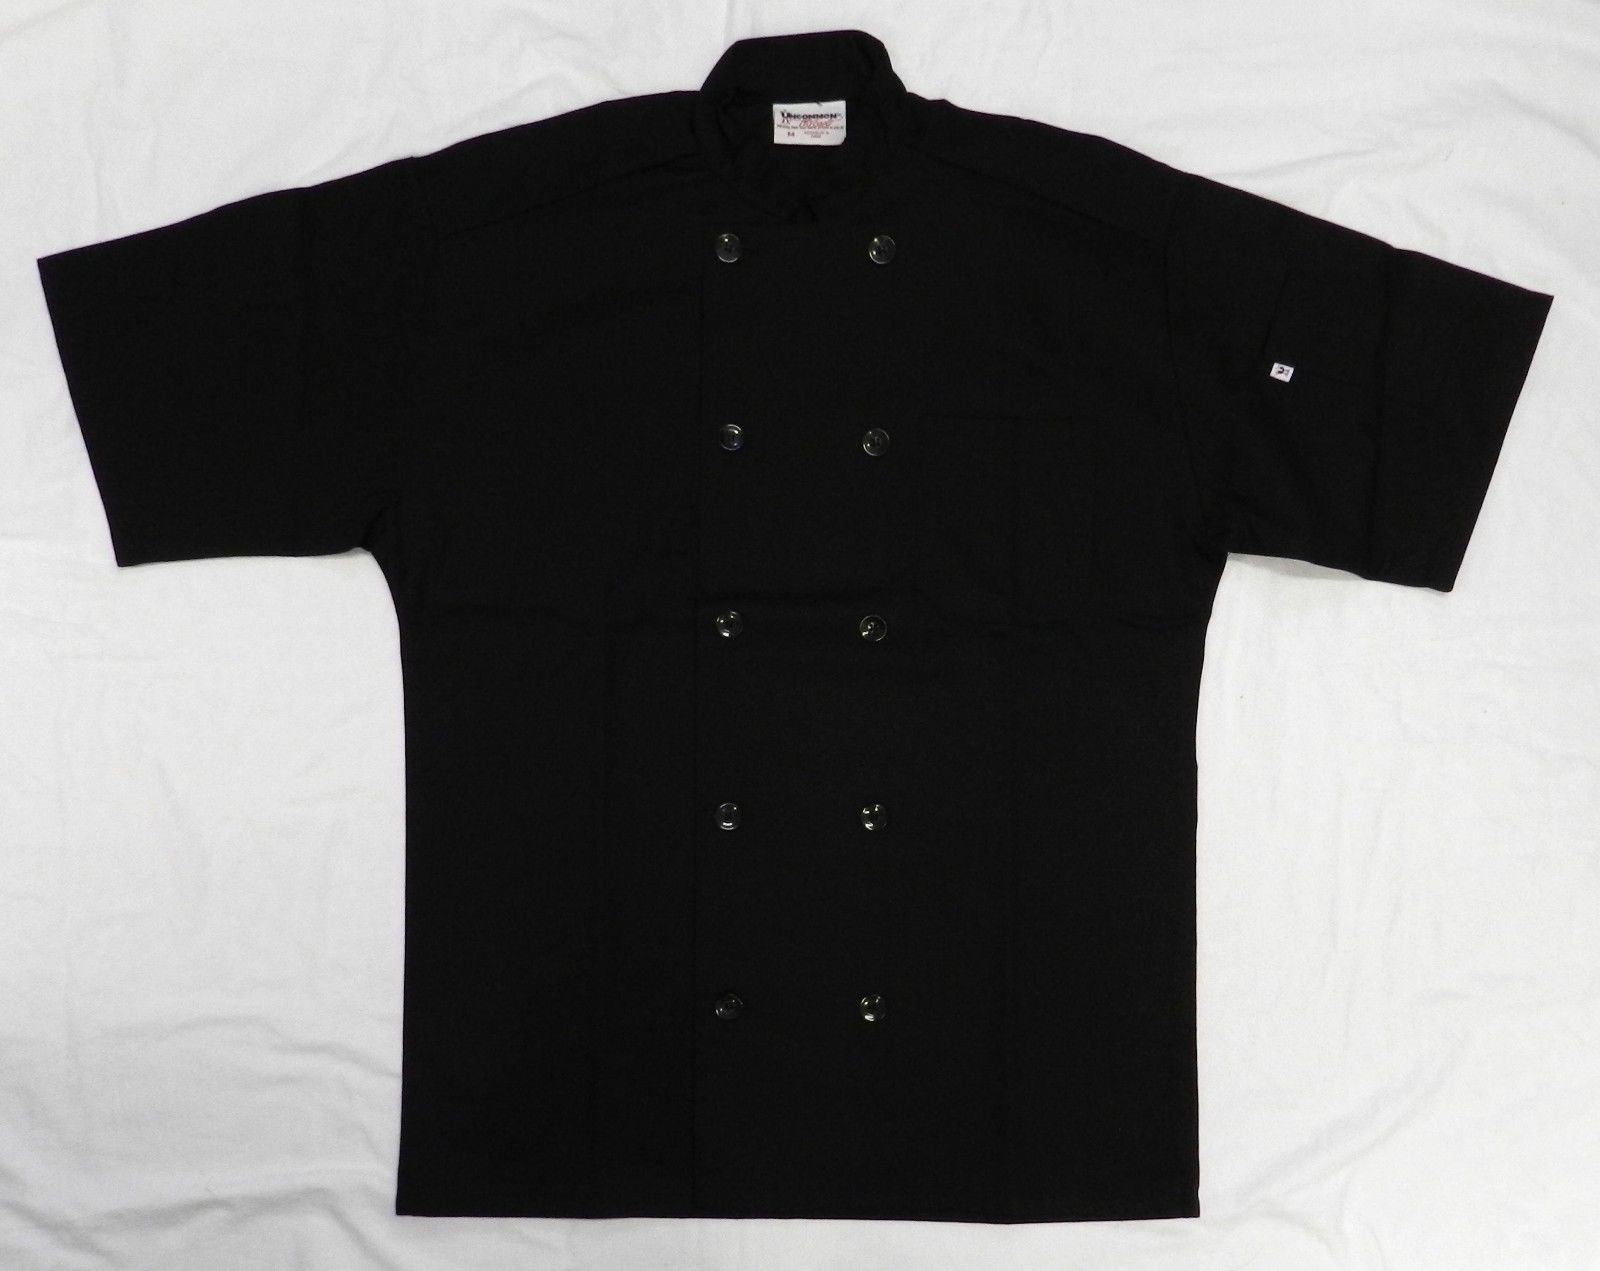 Uncommon Threads 415 Restaurant Uniform S/S Chef Coat Jacket Black 2XL New